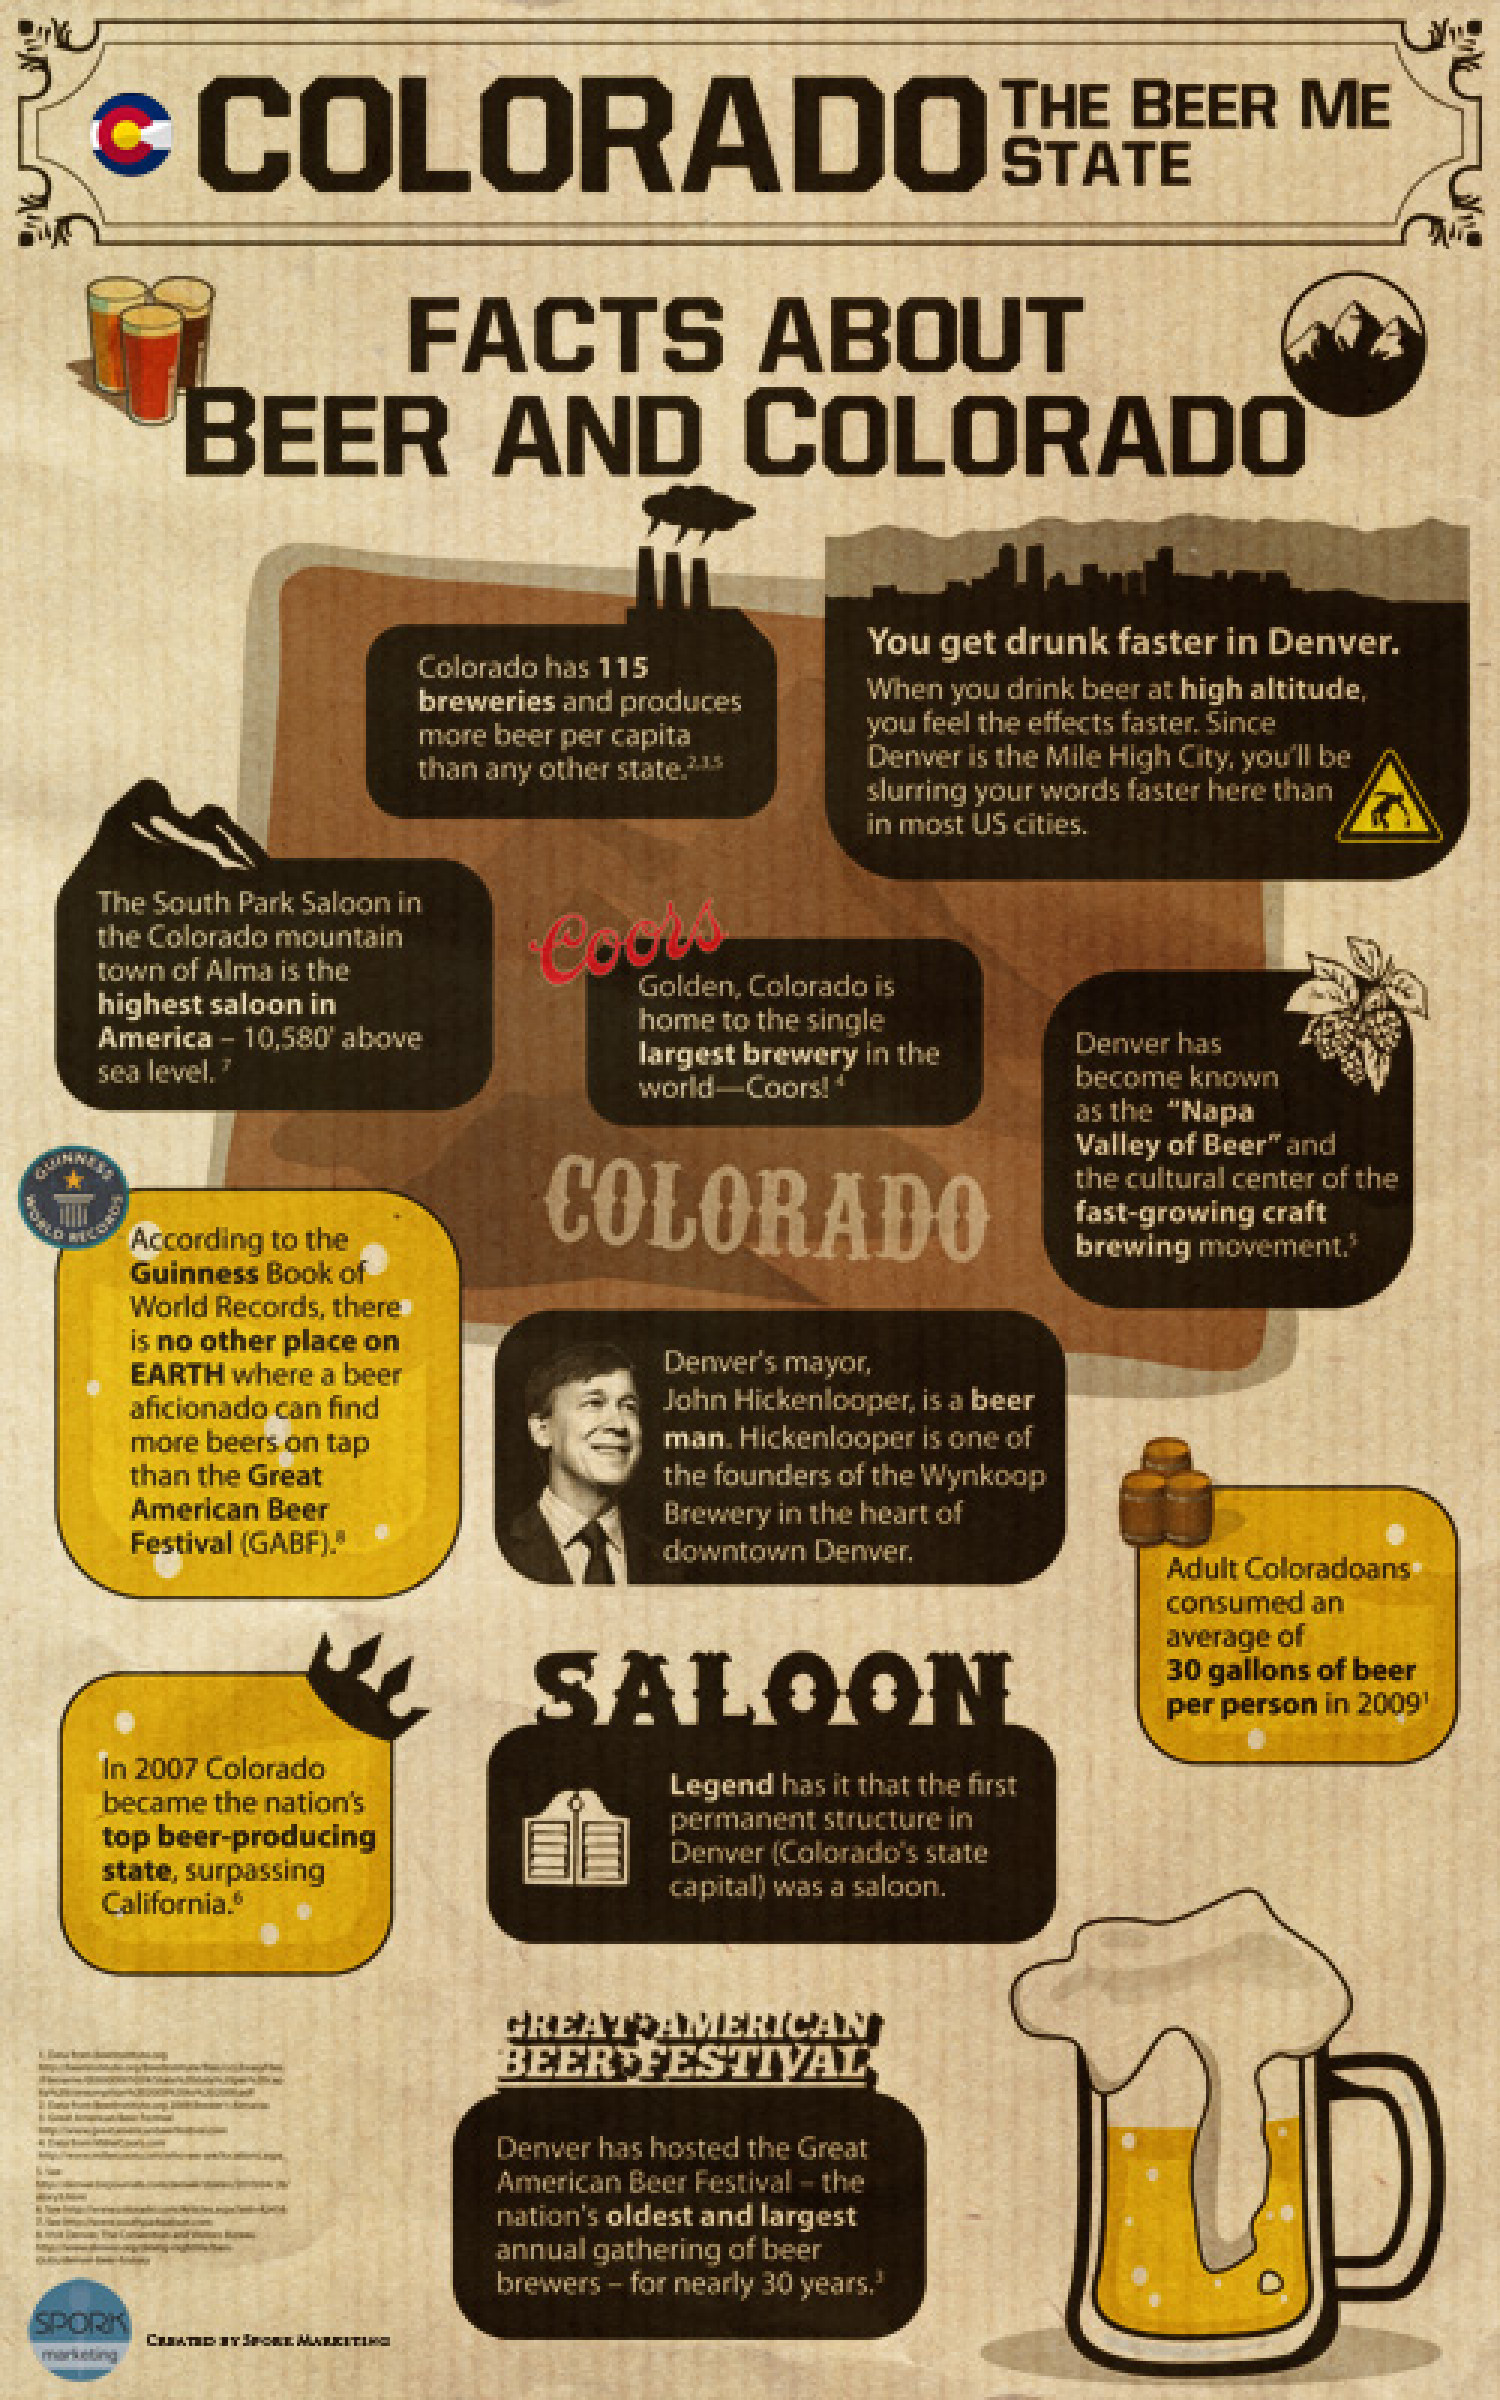 Facts about Beer and Colorado Infographic